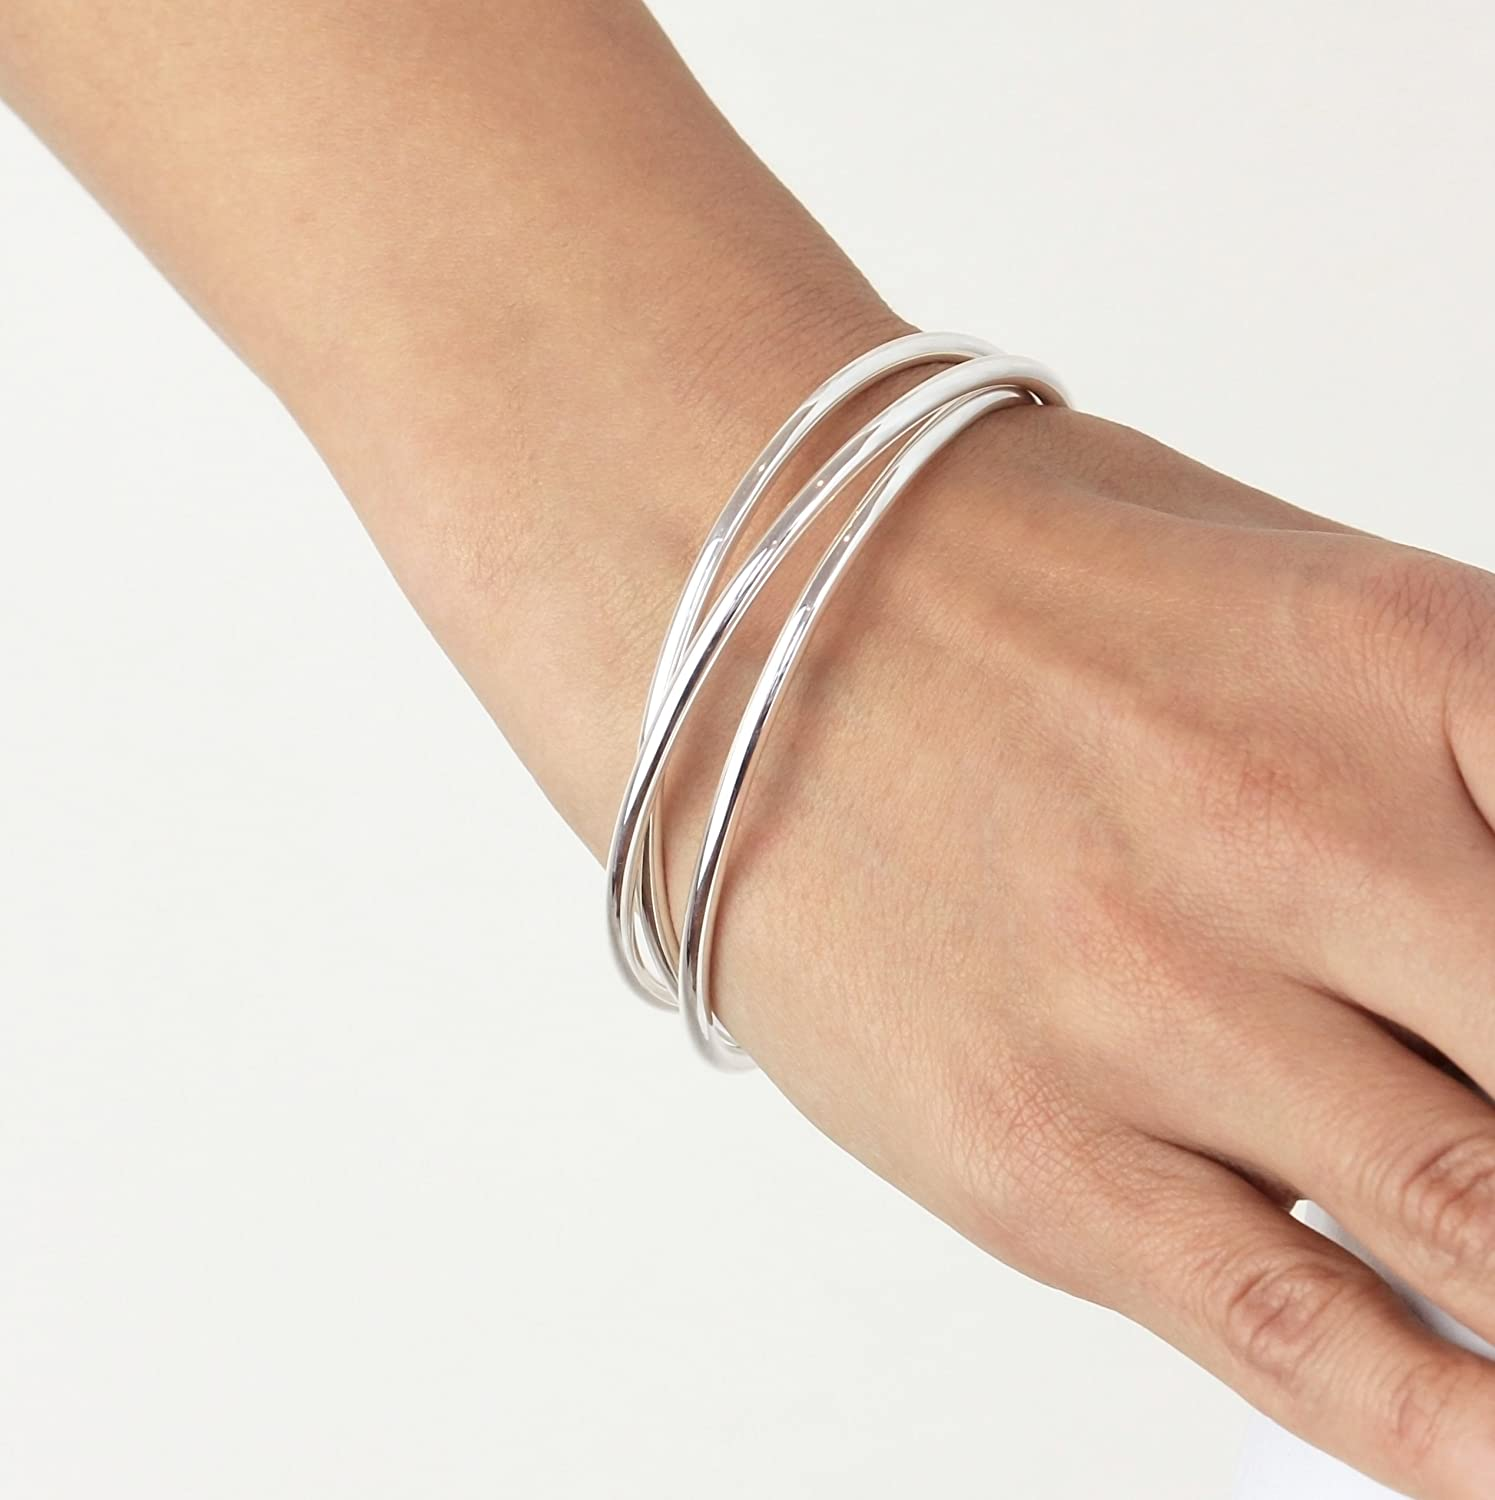 bangles made ban hand custom nadinejewelry hammered thin bangle handmade crafted stack silver sterling buy bracelets by